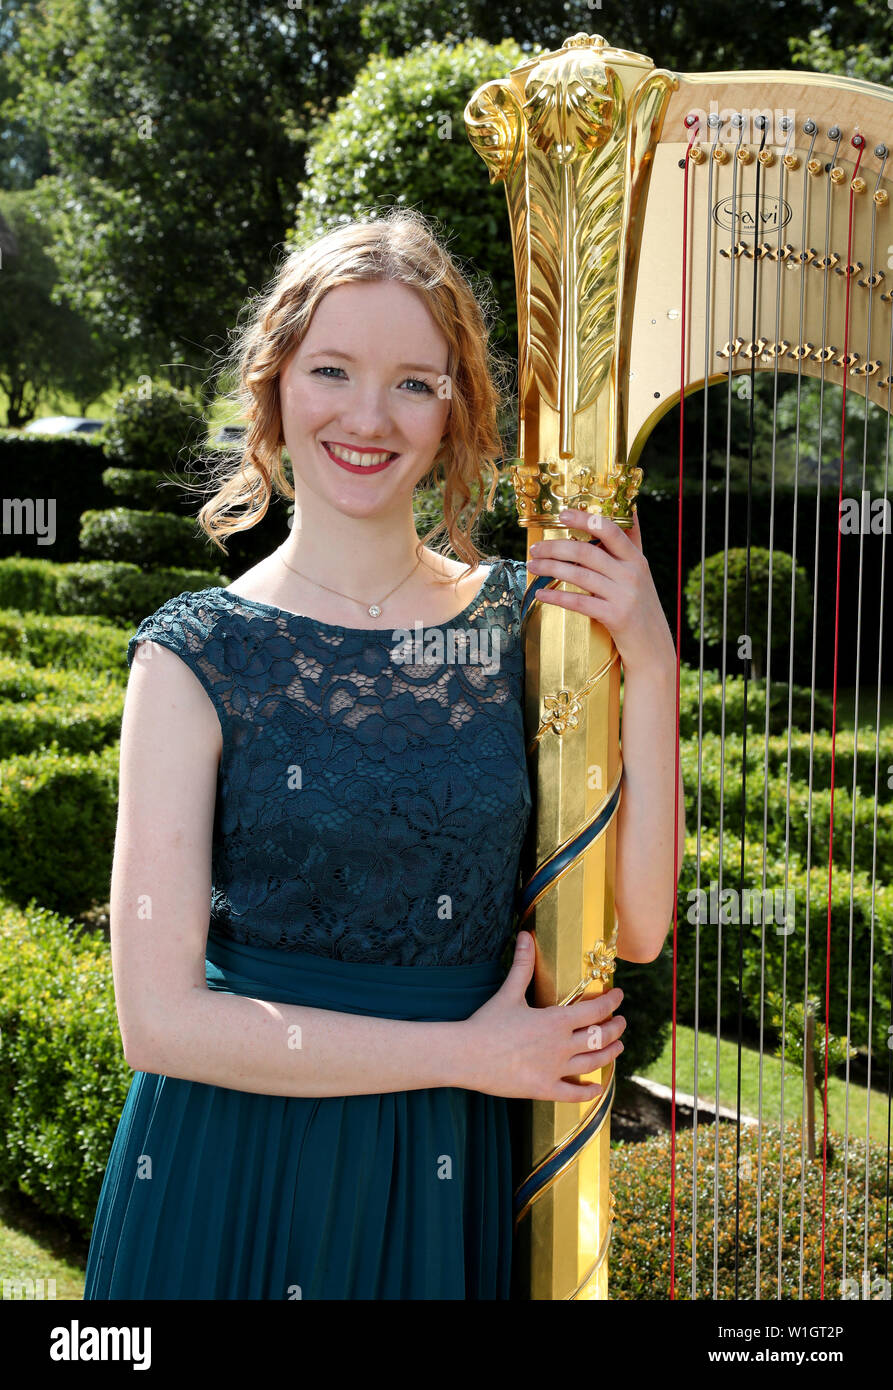 Alis Huws, the new Official Harpist to the Prince of Wales, poses for a photo during a musical evening hosted by the Prince of Wales and the Duchess of Cornwall at their official Welsh residence Llwynywermod in Llandovery, Carmarthenshire. Stock Photo